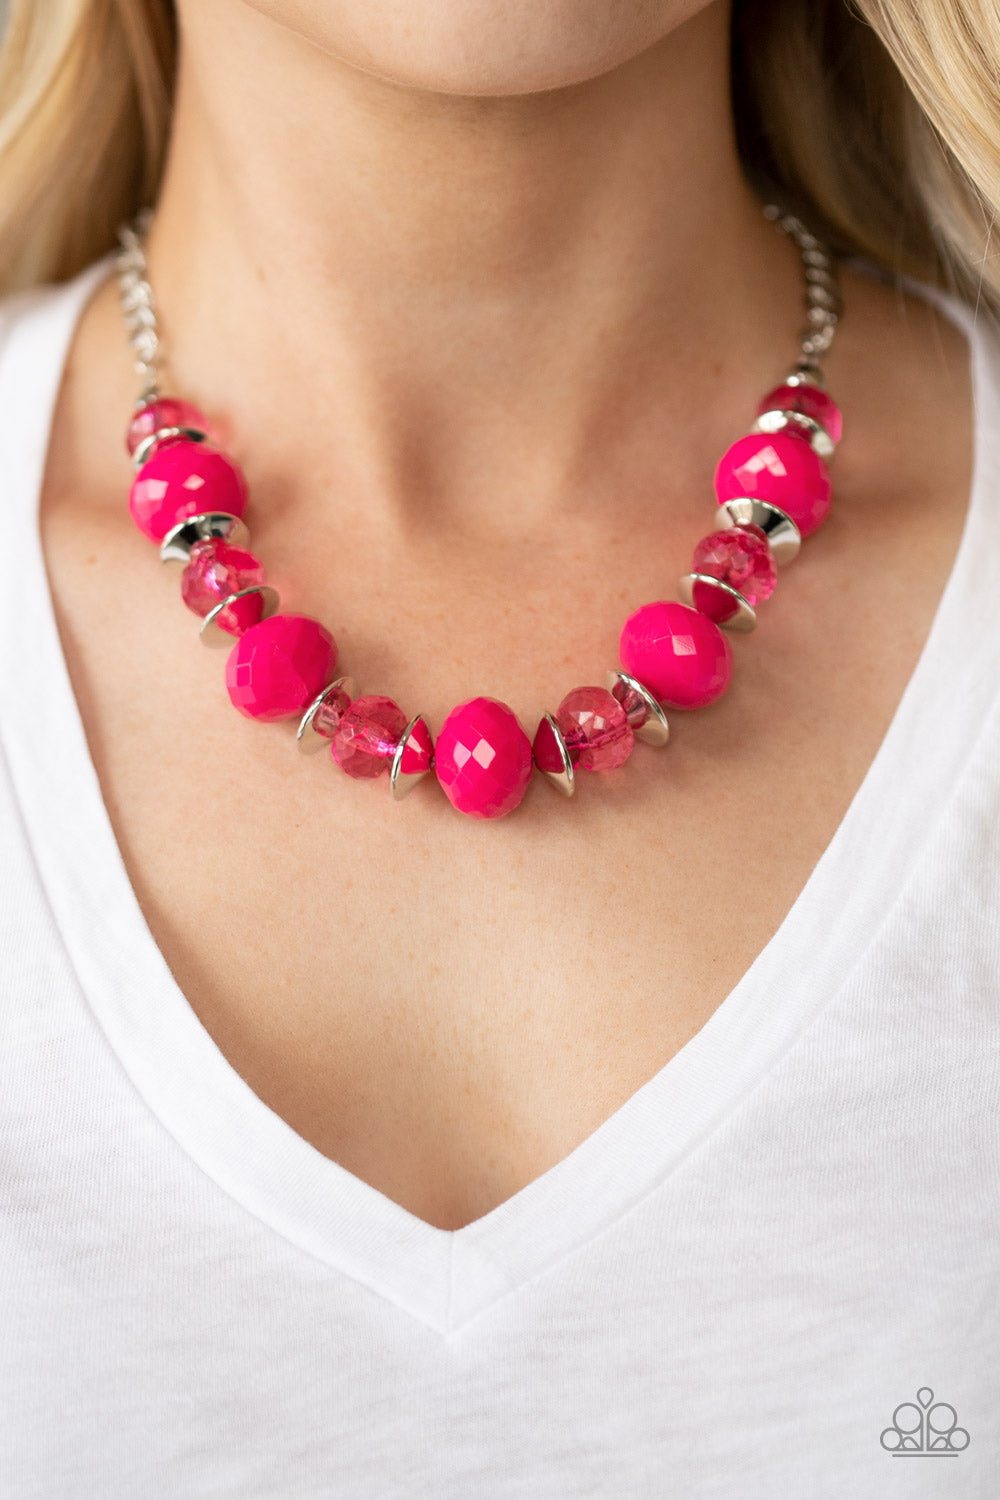 Hollywood Gossip - Pink Necklace